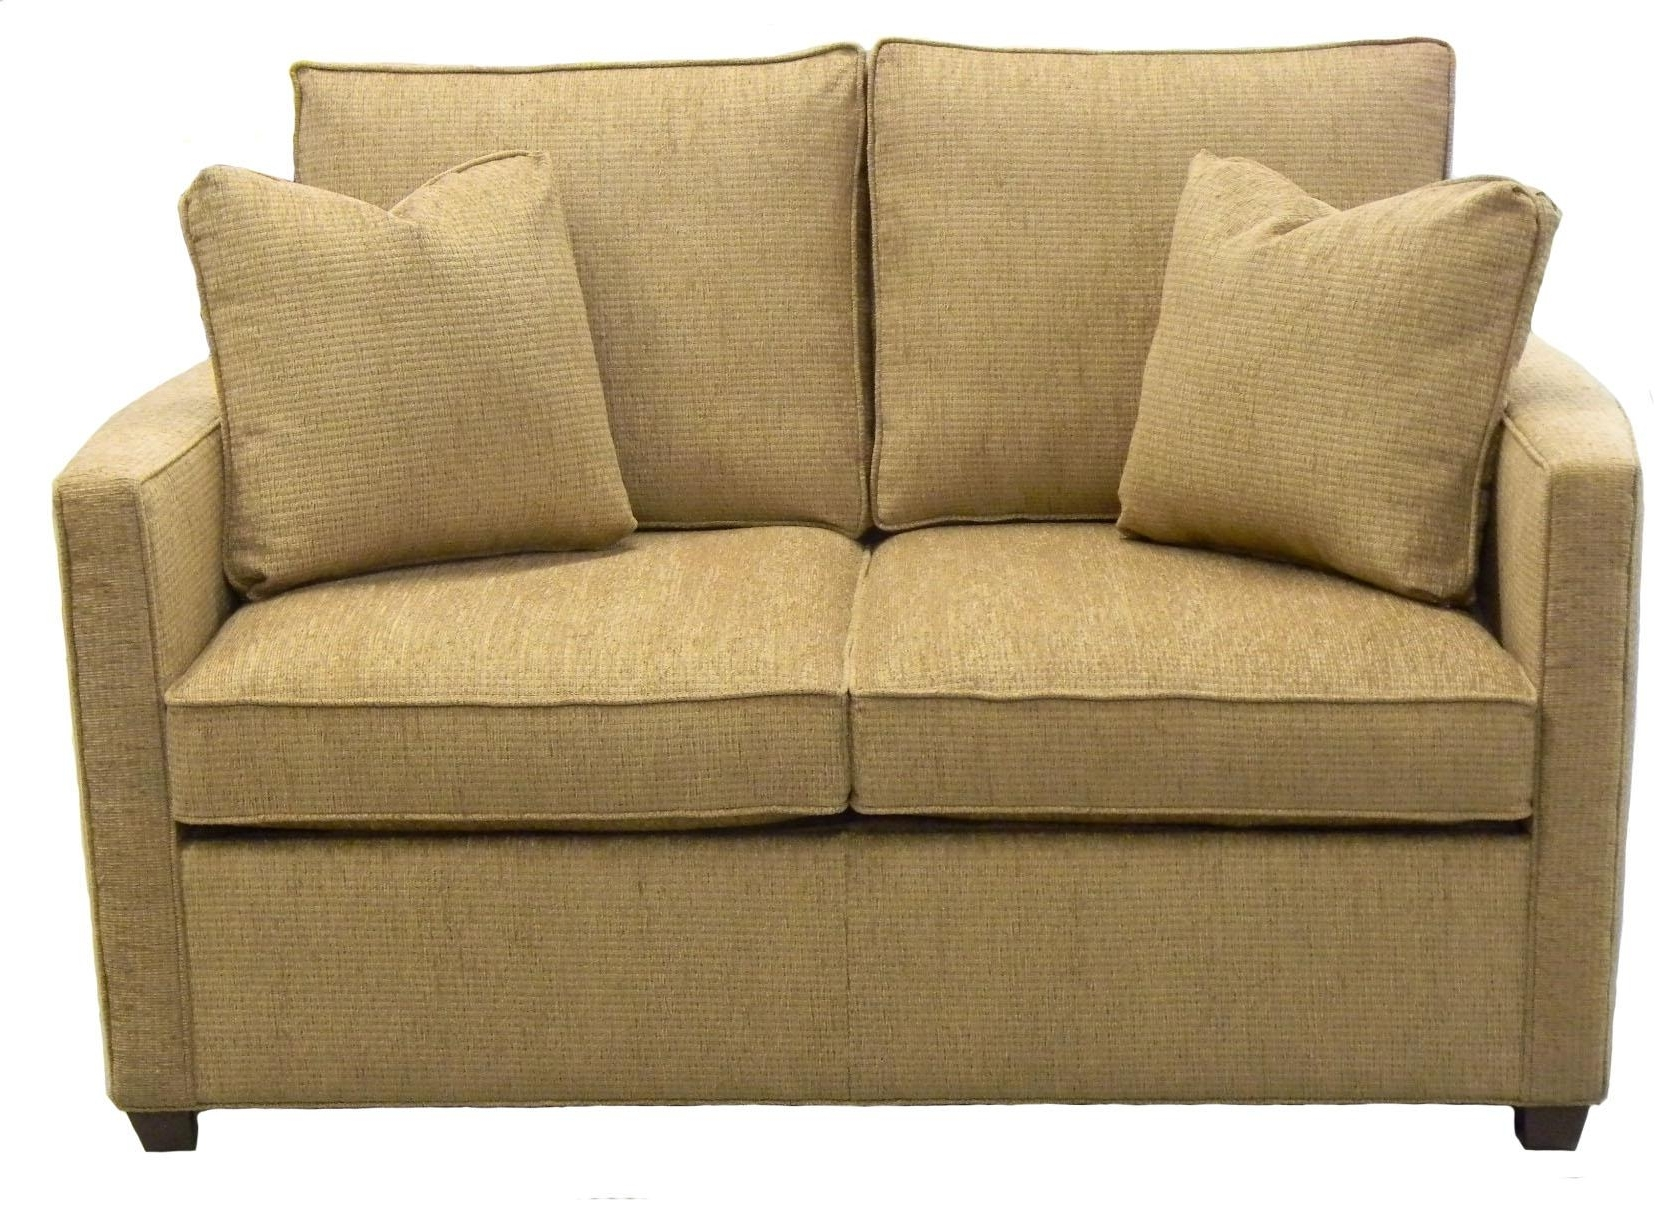 Twin Sofa Chairs Within Best And Newest Furniture : Loveseat Sleepers Elegant Sleeper Chair Ikea Ikea Ps (View 10 of 20)